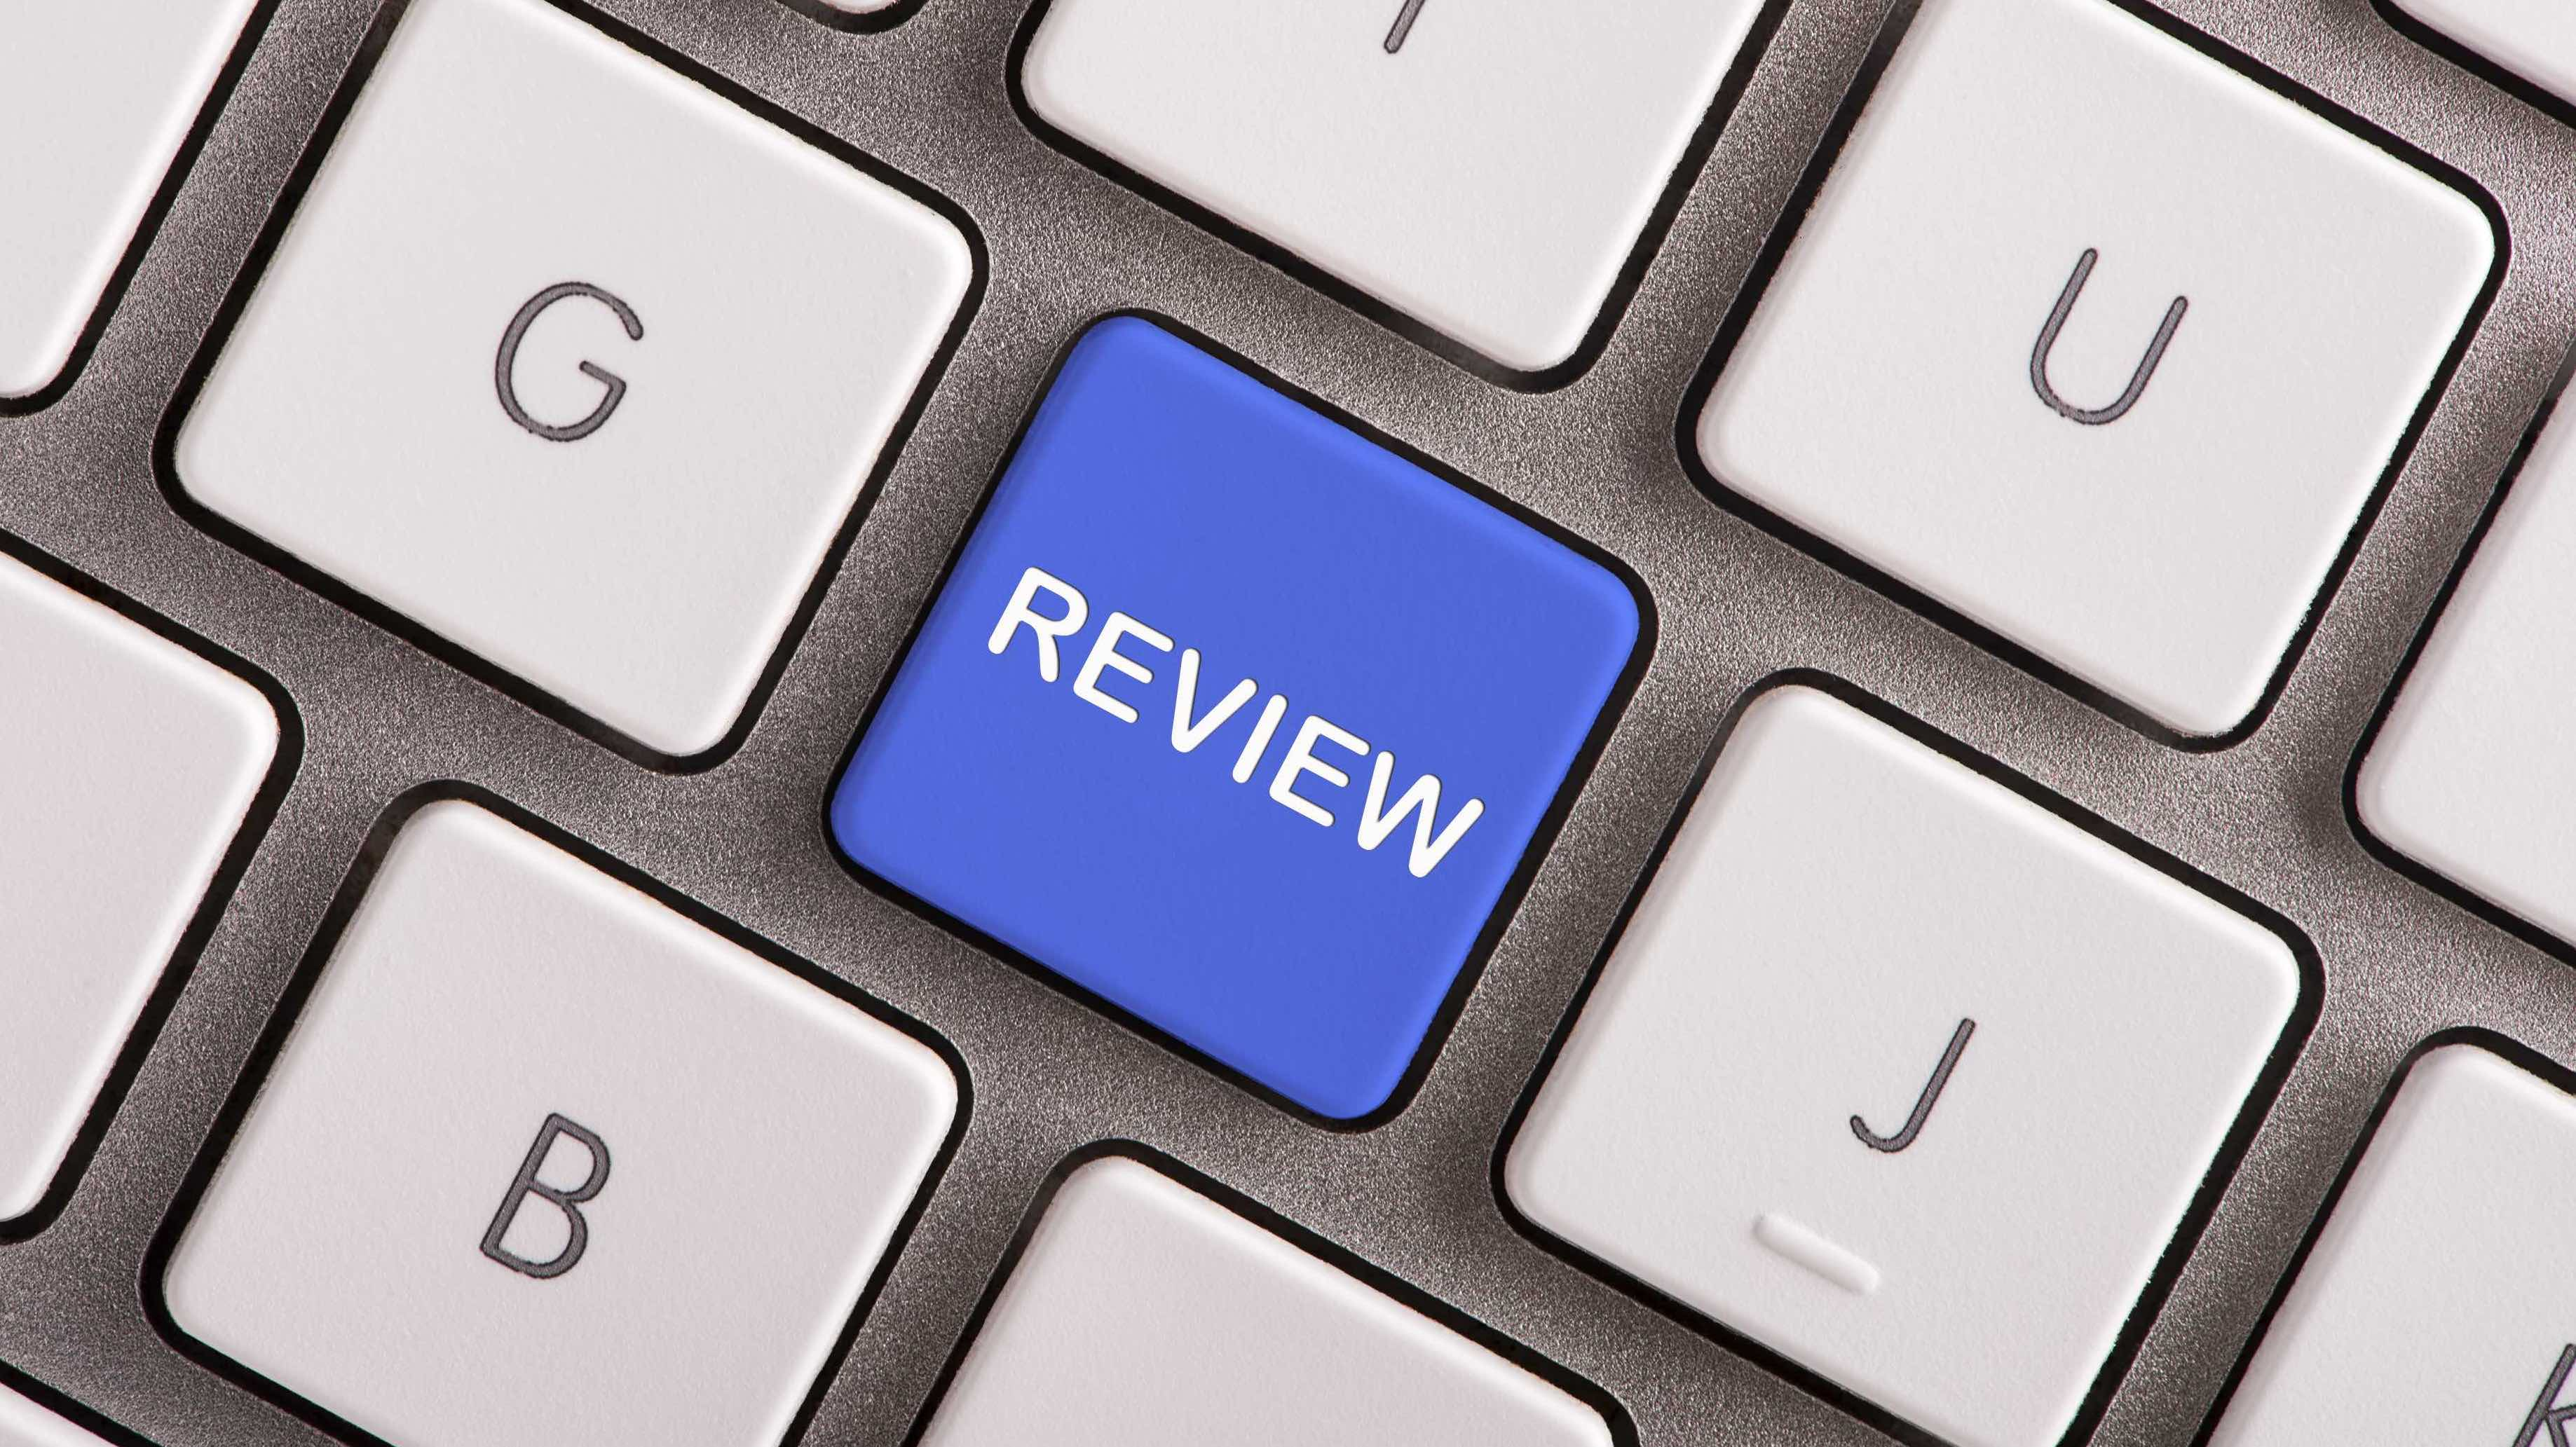 20 online review stats to know in 2019